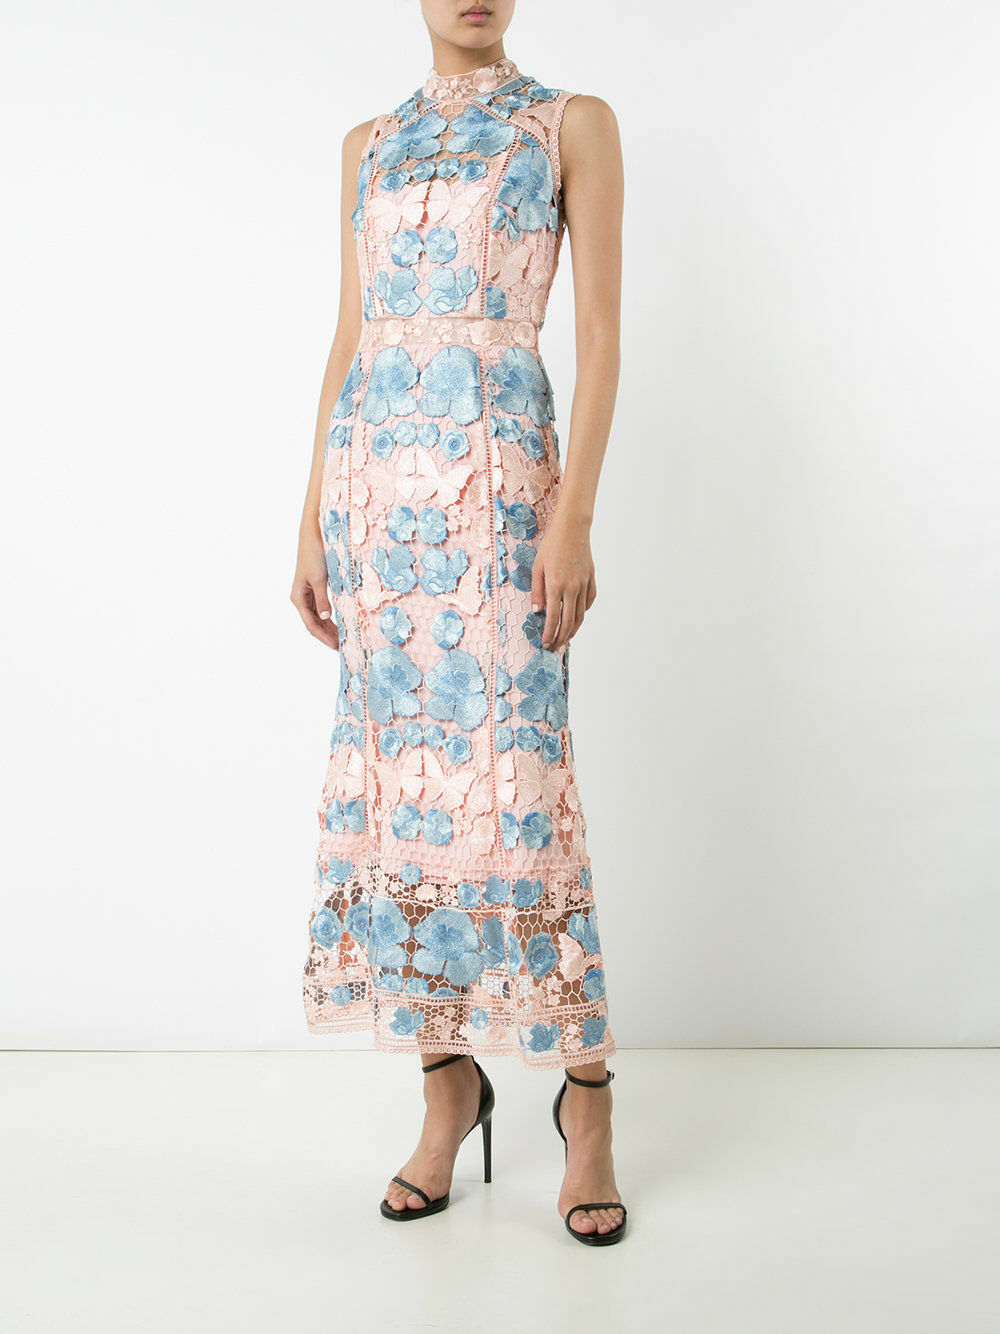 Marchesa Notte Floral Dress Guipure Lace Gown Blush Blue Embroidered  $1295 Sz.2